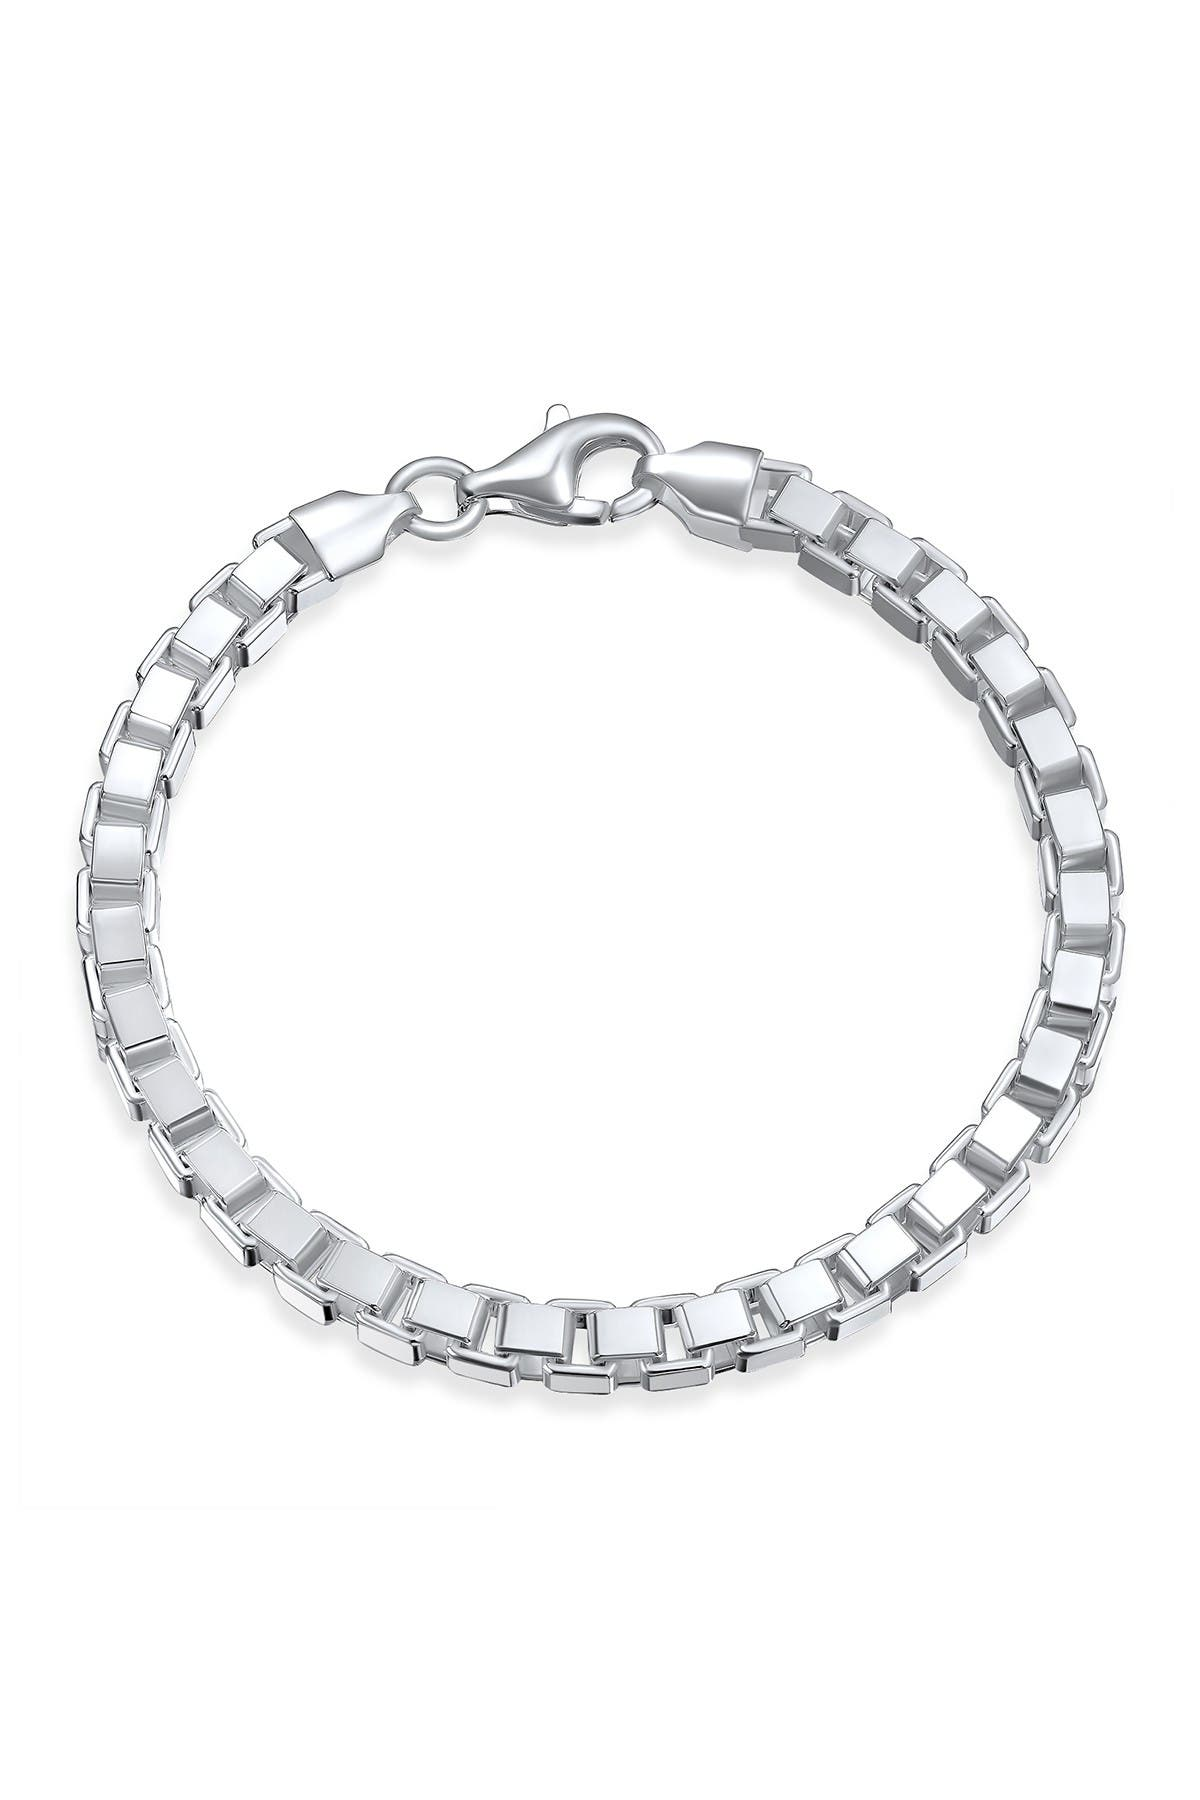 Image of Bling Jewelry Sterling Silver Box Chain Bracelet